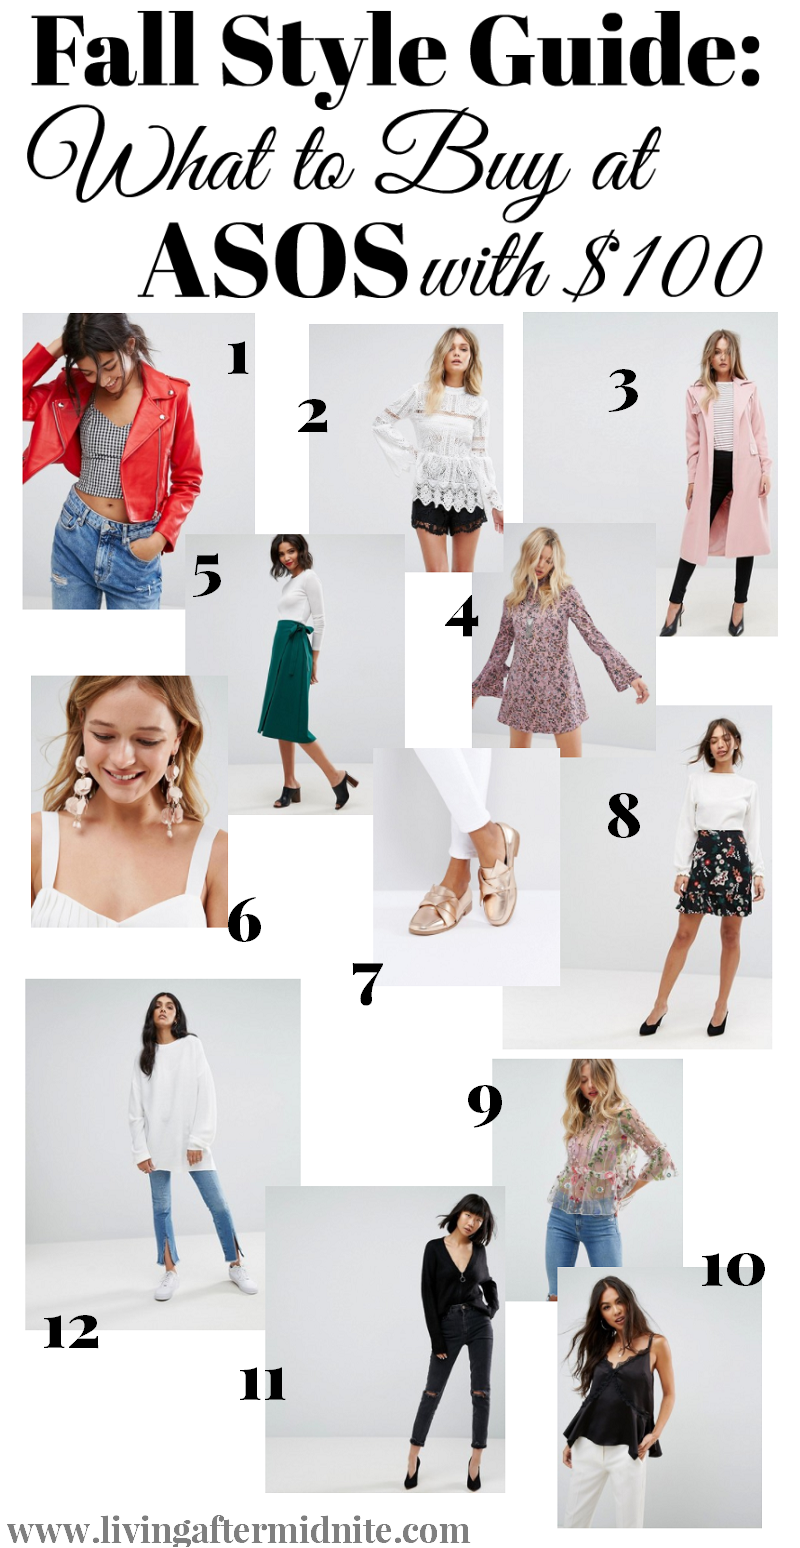 Fall Style Guide What to Buy at ASOS with $100